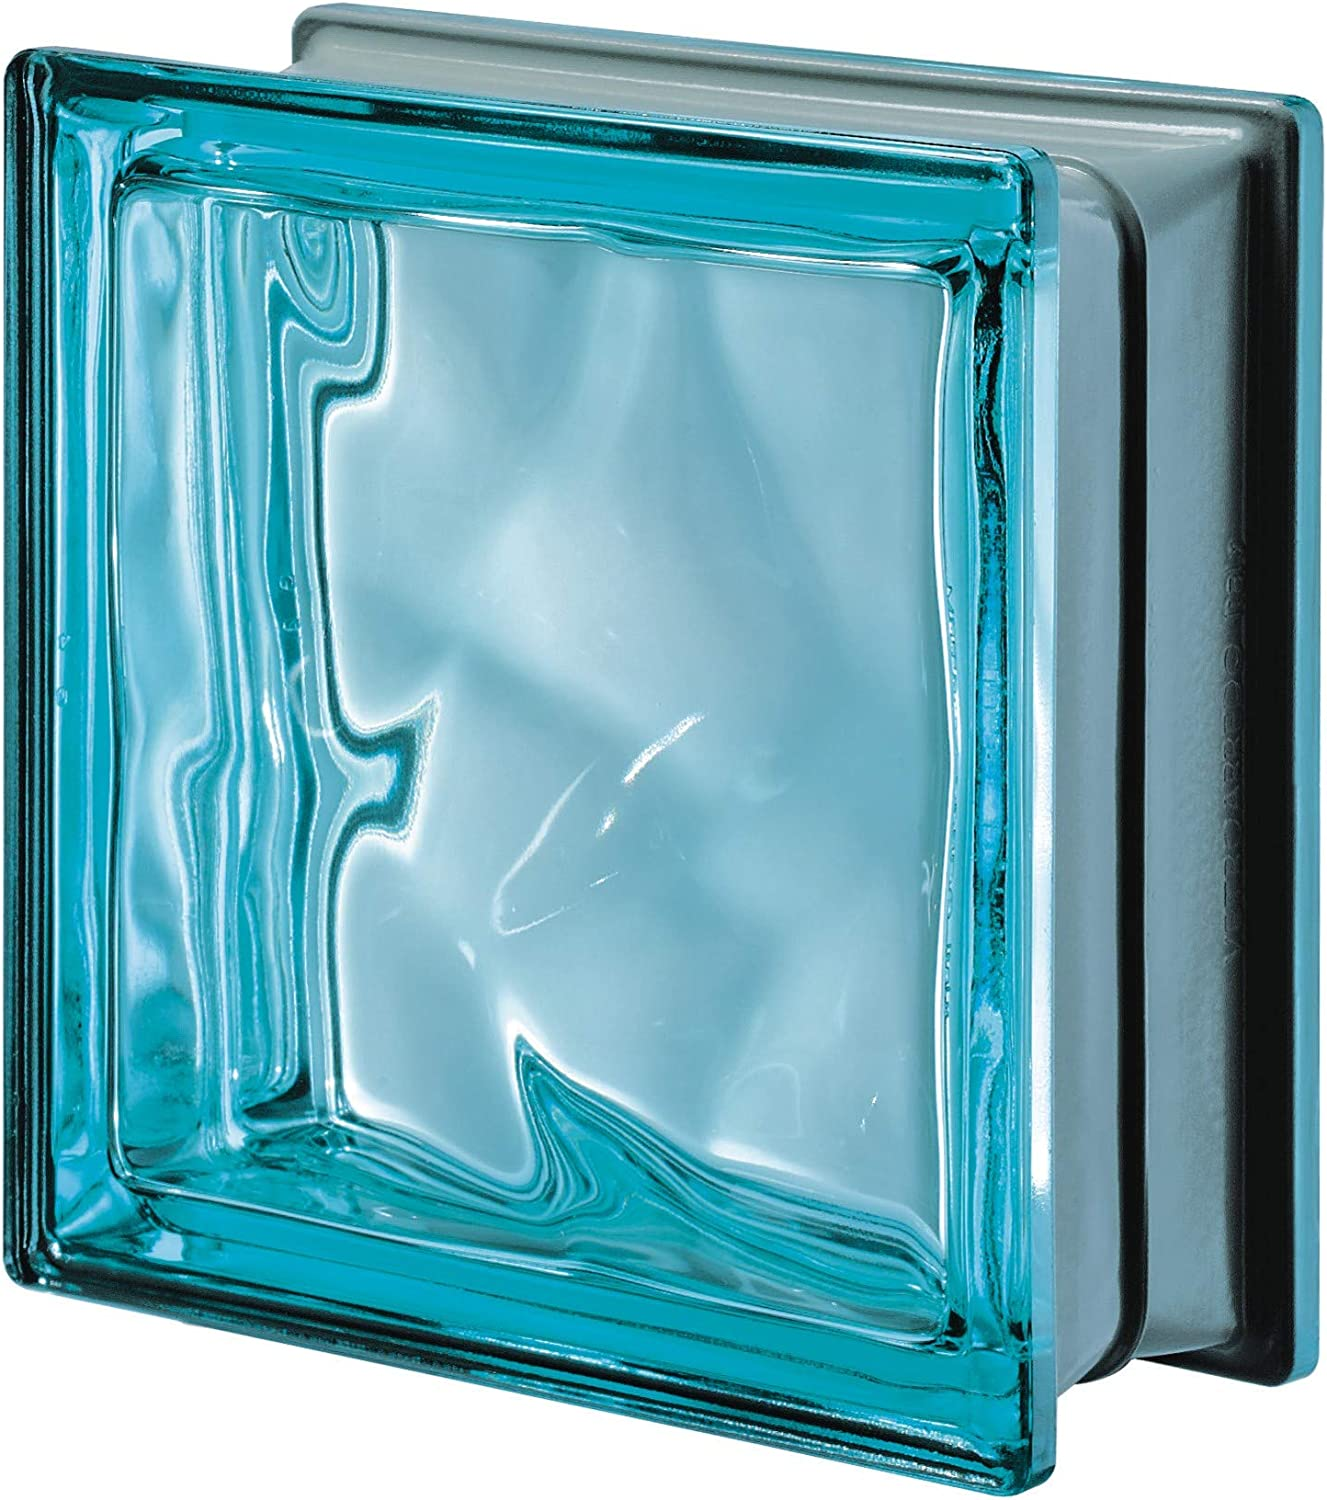 Seves Glass Block 7.5 x 7.5 x 3 Basic Wave Turquoise Color Glass Block